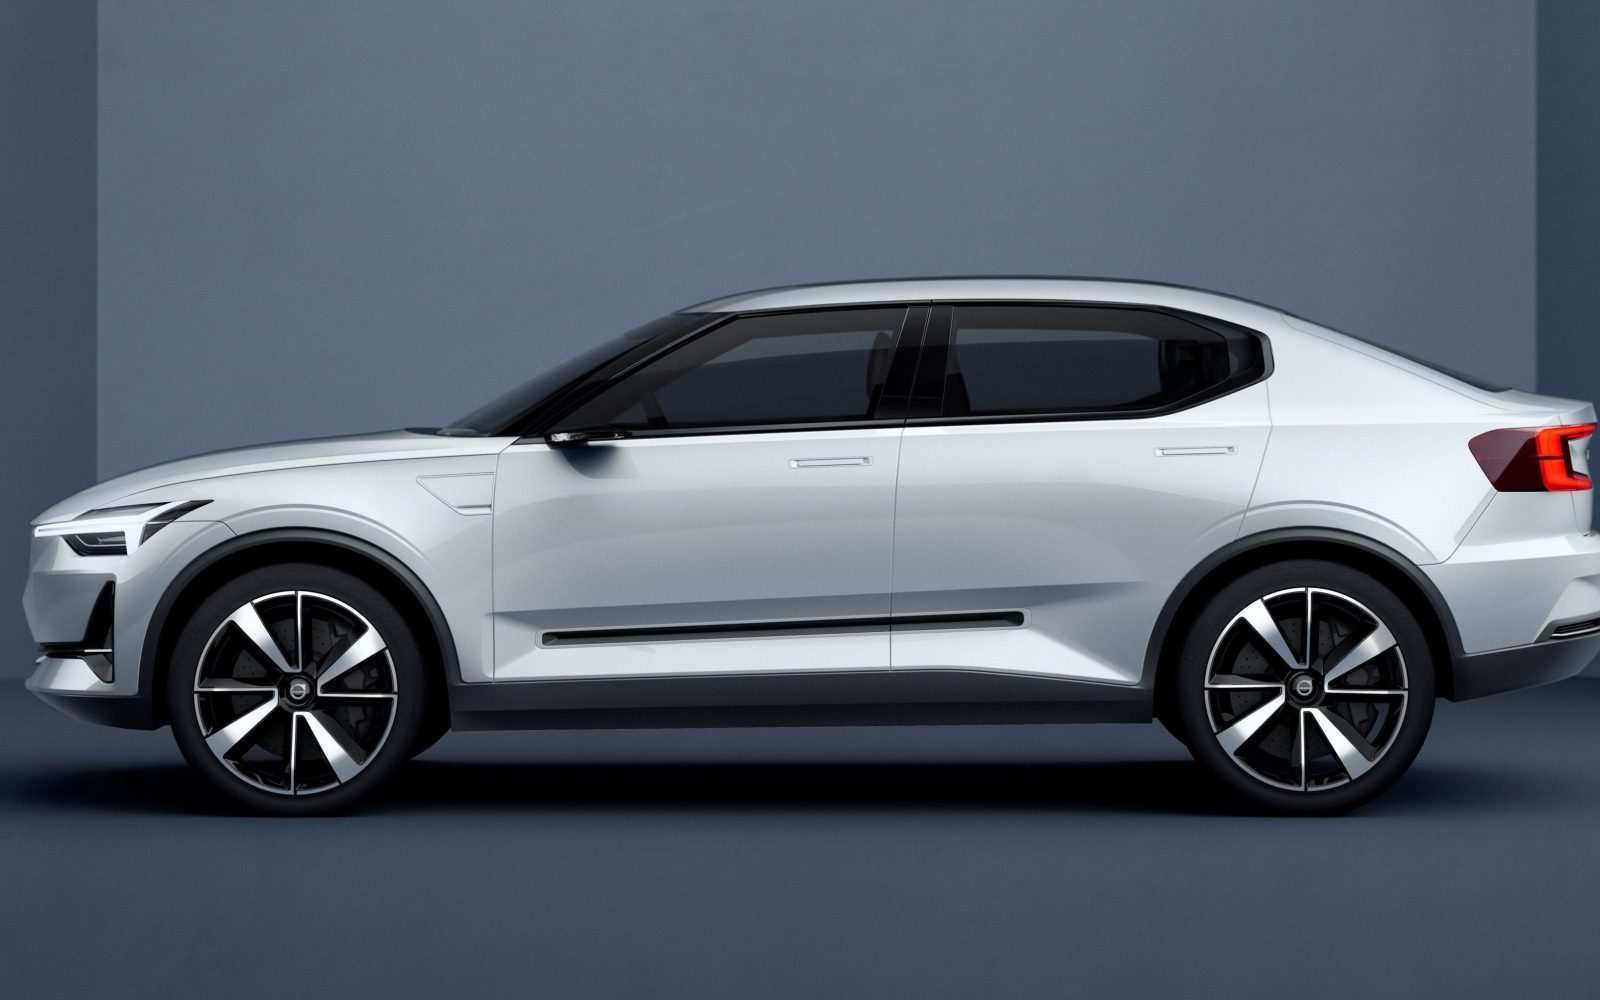 84 New 2019 Volvo Electric Car Photos for 2019 Volvo Electric Car